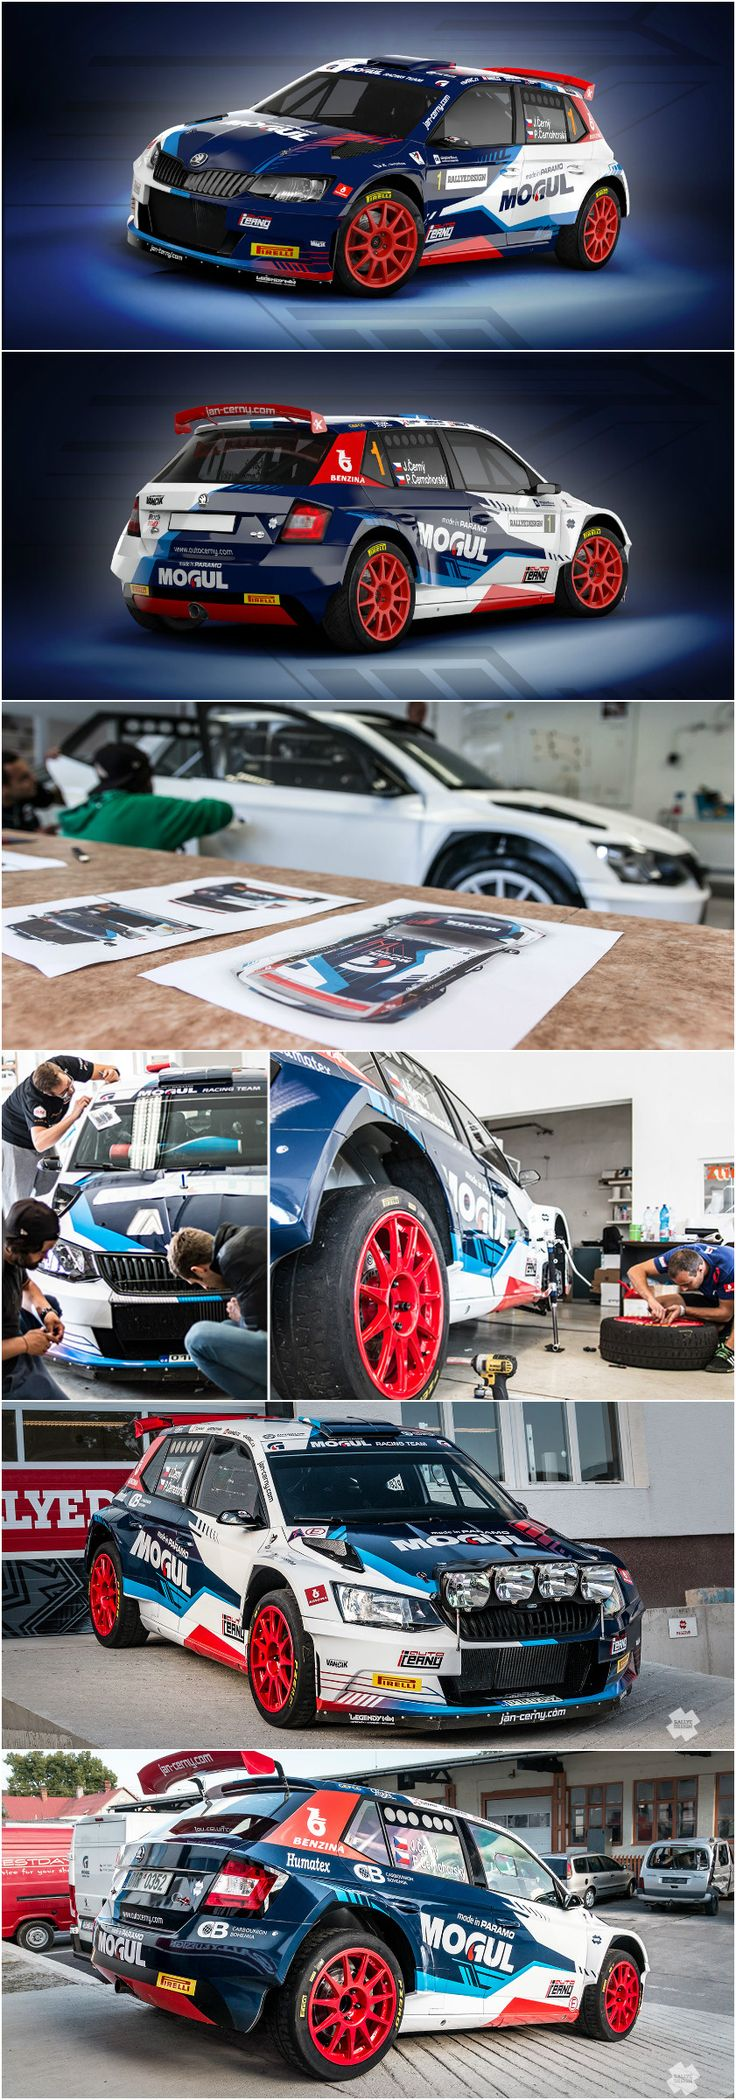 Car decals tribal graphic design zion series - Design For Mogul Racing Team Crew Jan Ern Petr Ernohorsk And Their New Stickerdecalsracing Teamvehicle